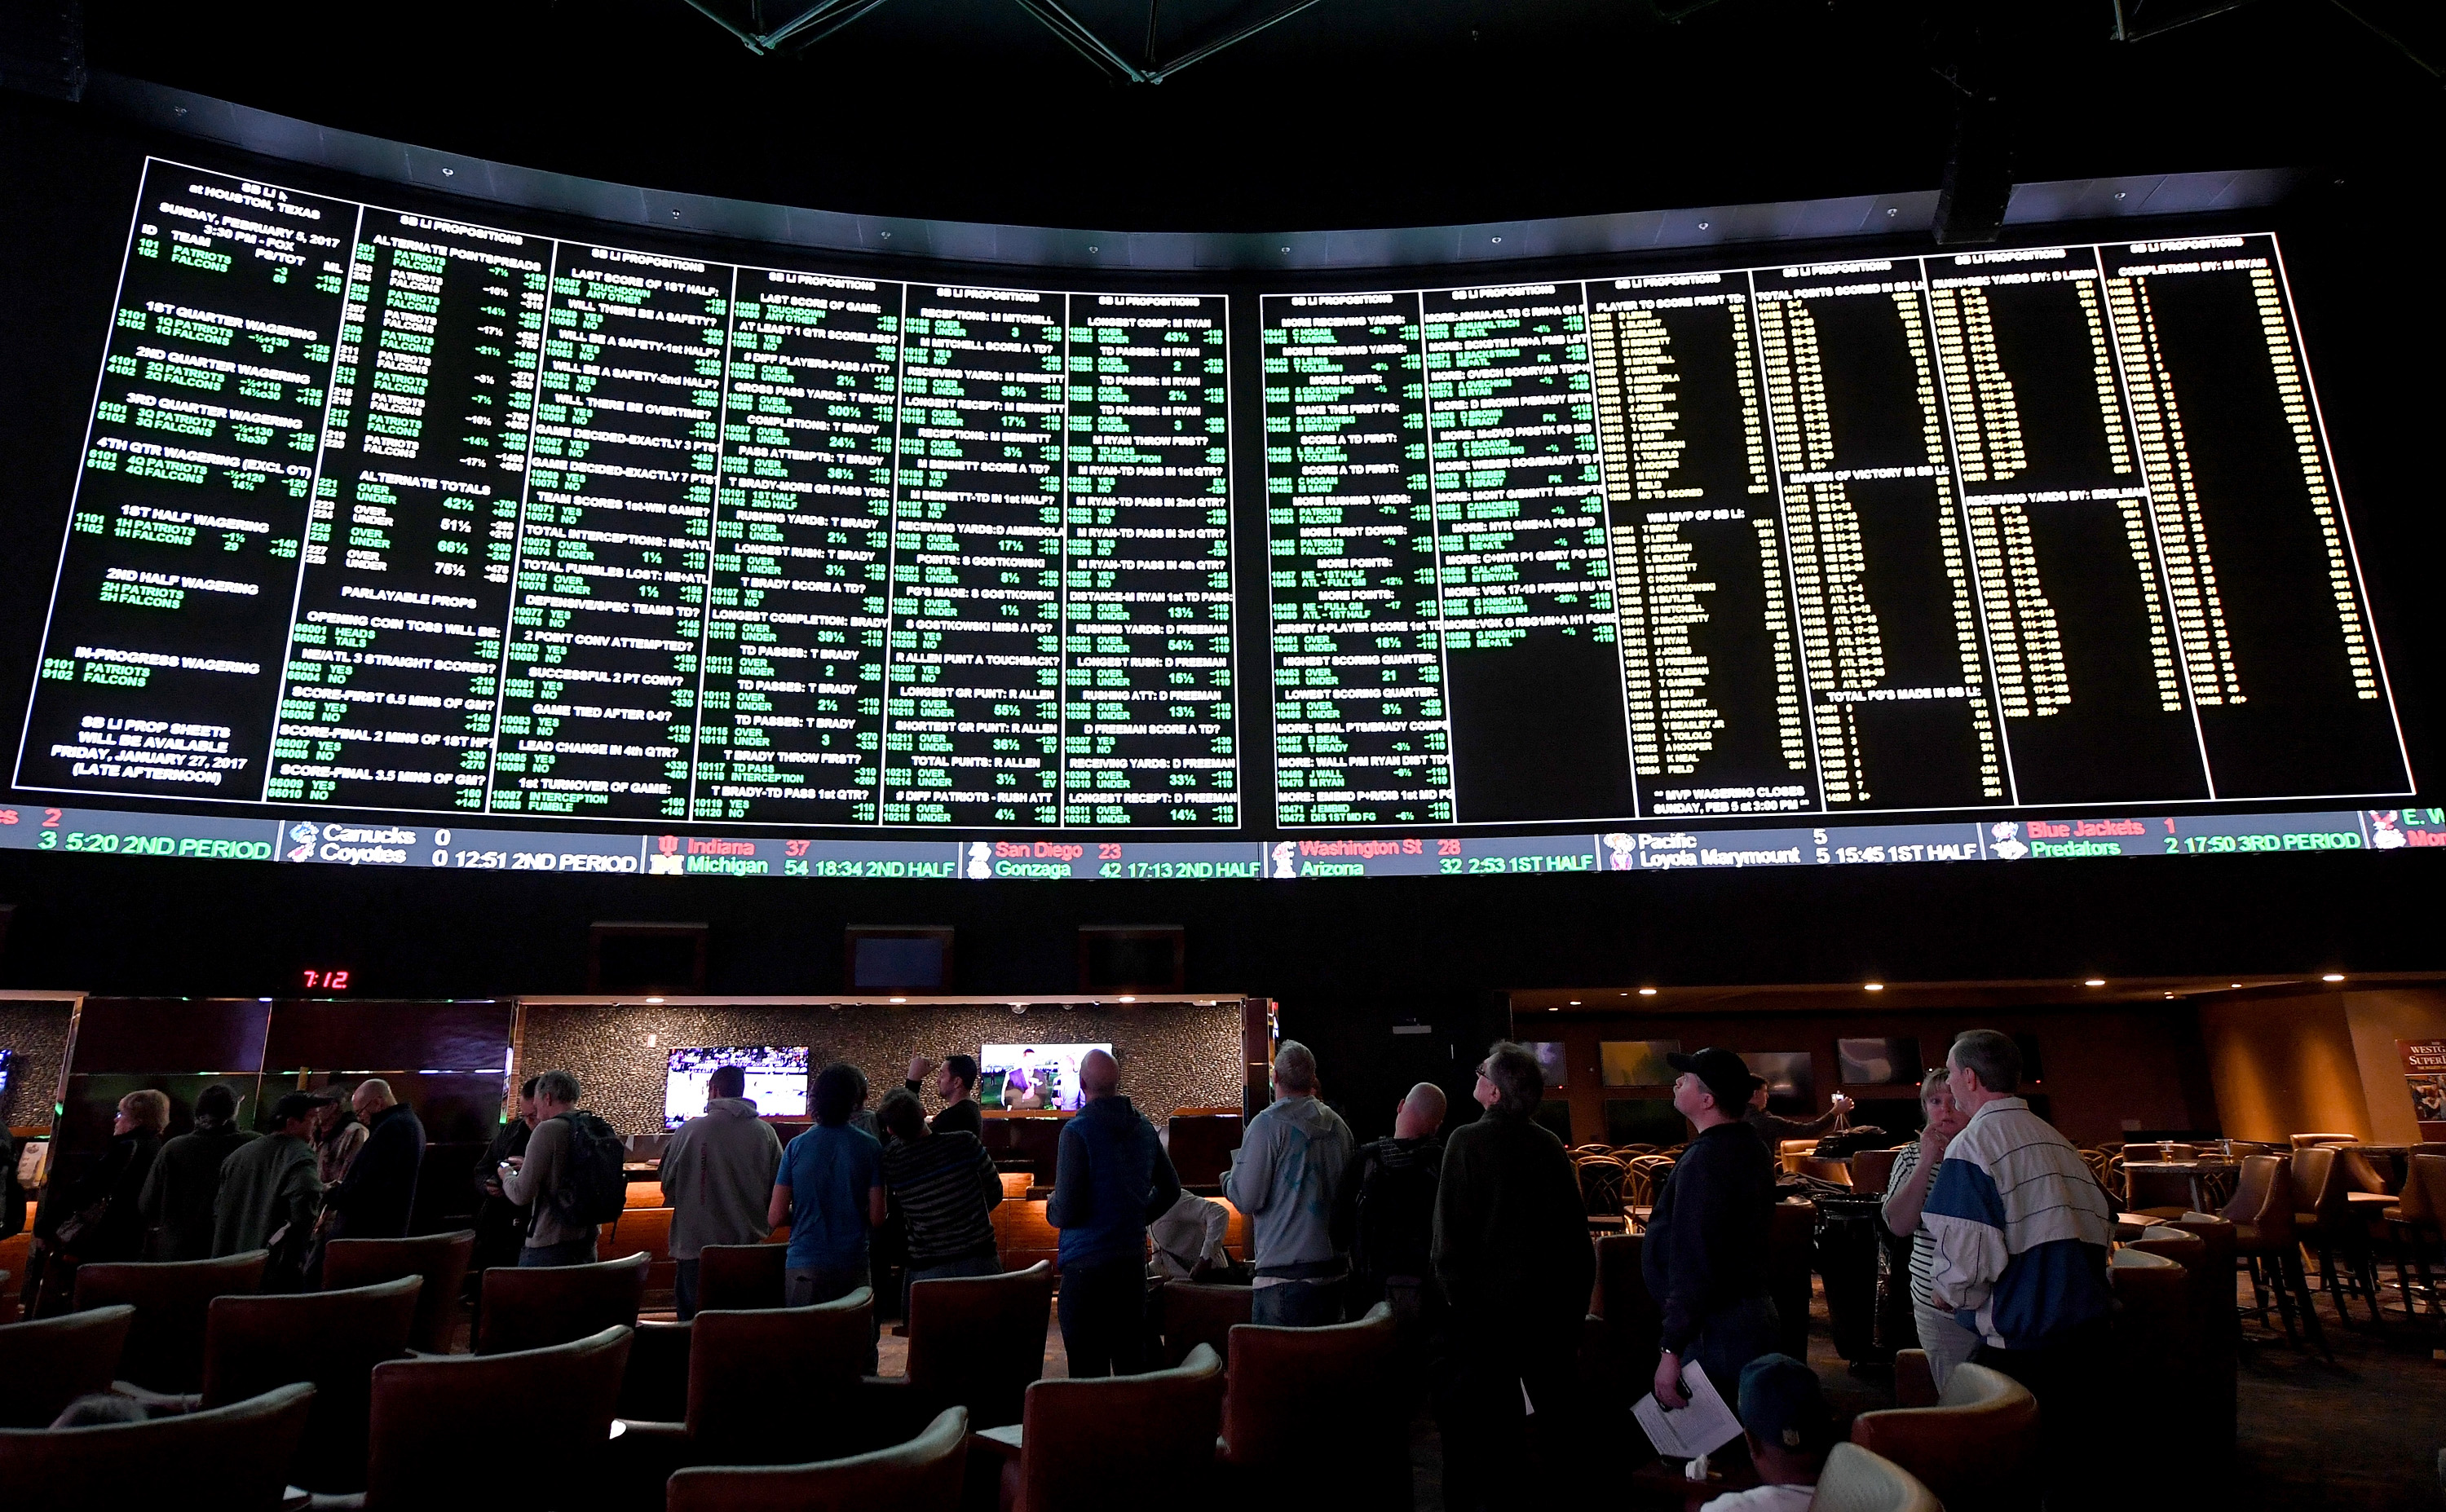 Bettors line up to wager on Super Bowl LI between the Atlanta Falcons and the New England Patriots at the Westgate Las Vegas Resort & Casino on Jan. 26, 2017.